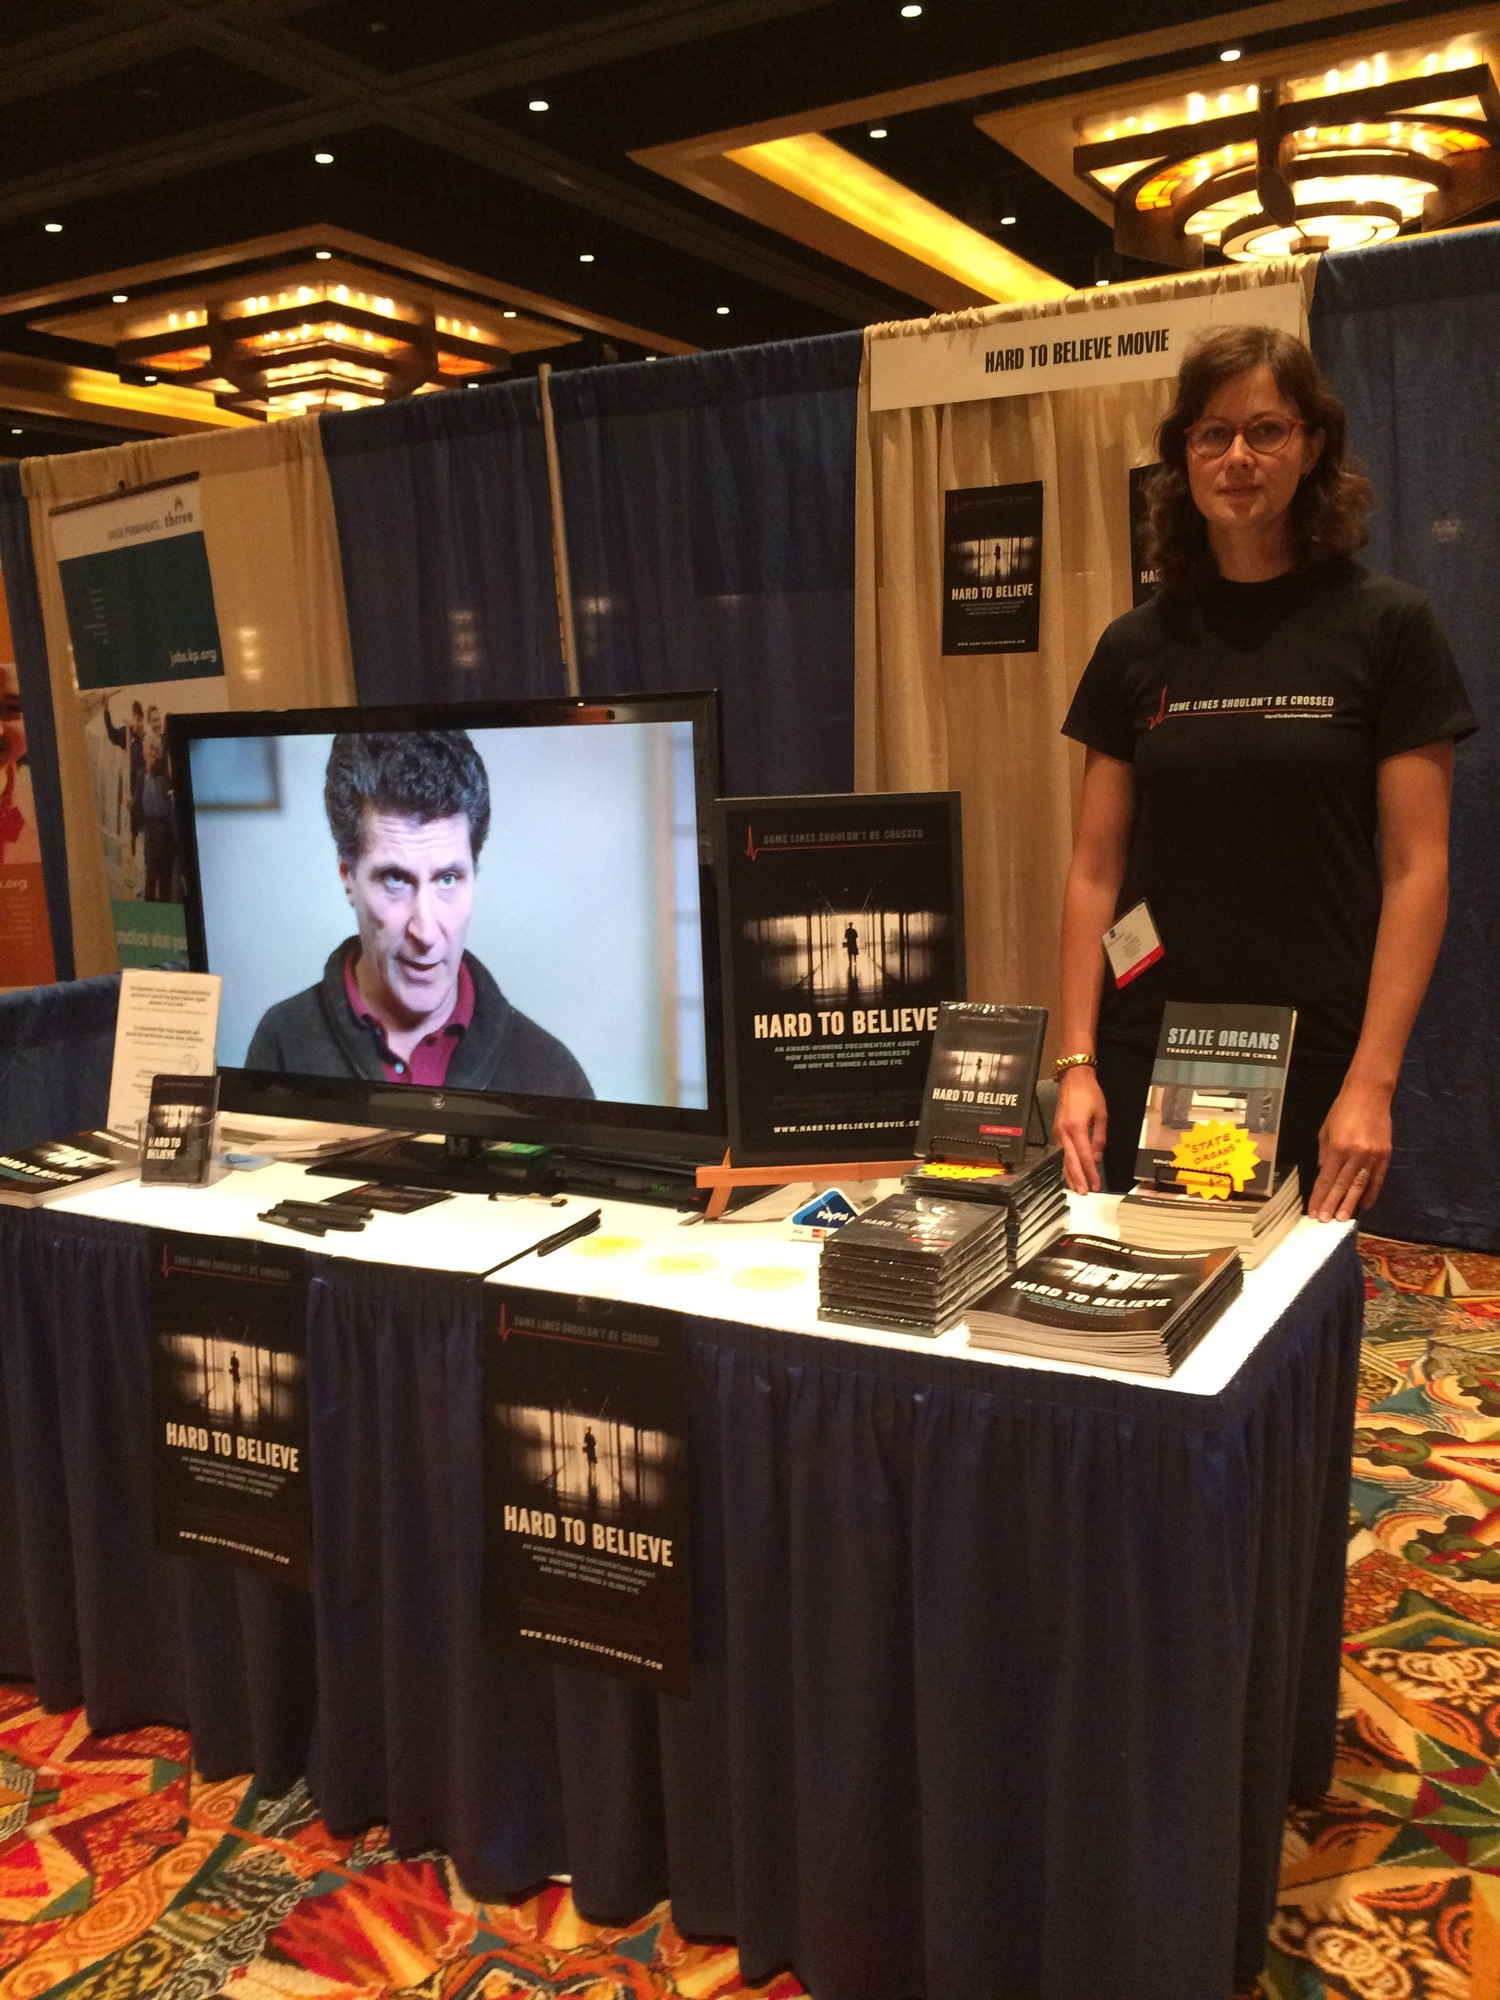 Swoop Films representative at the ASBH conference. (Image: Swoop Films)